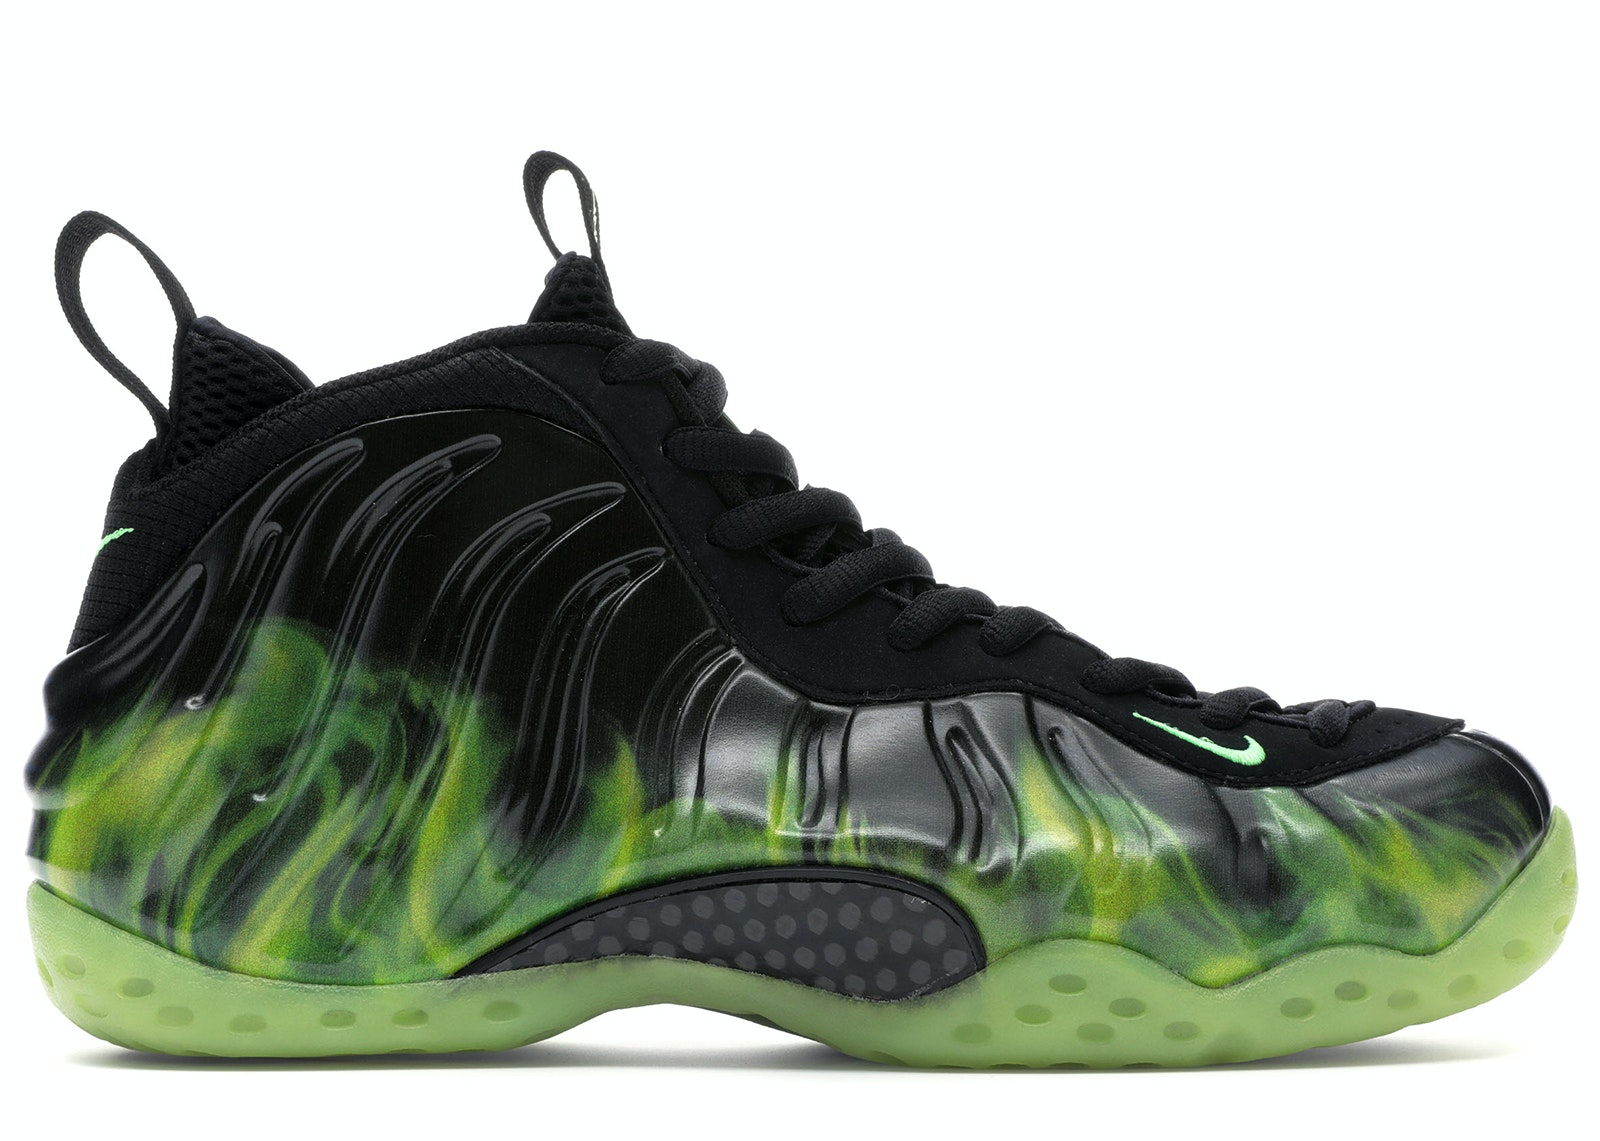 Nike Air Foamposite One Anthracite Returns Holiday 2020